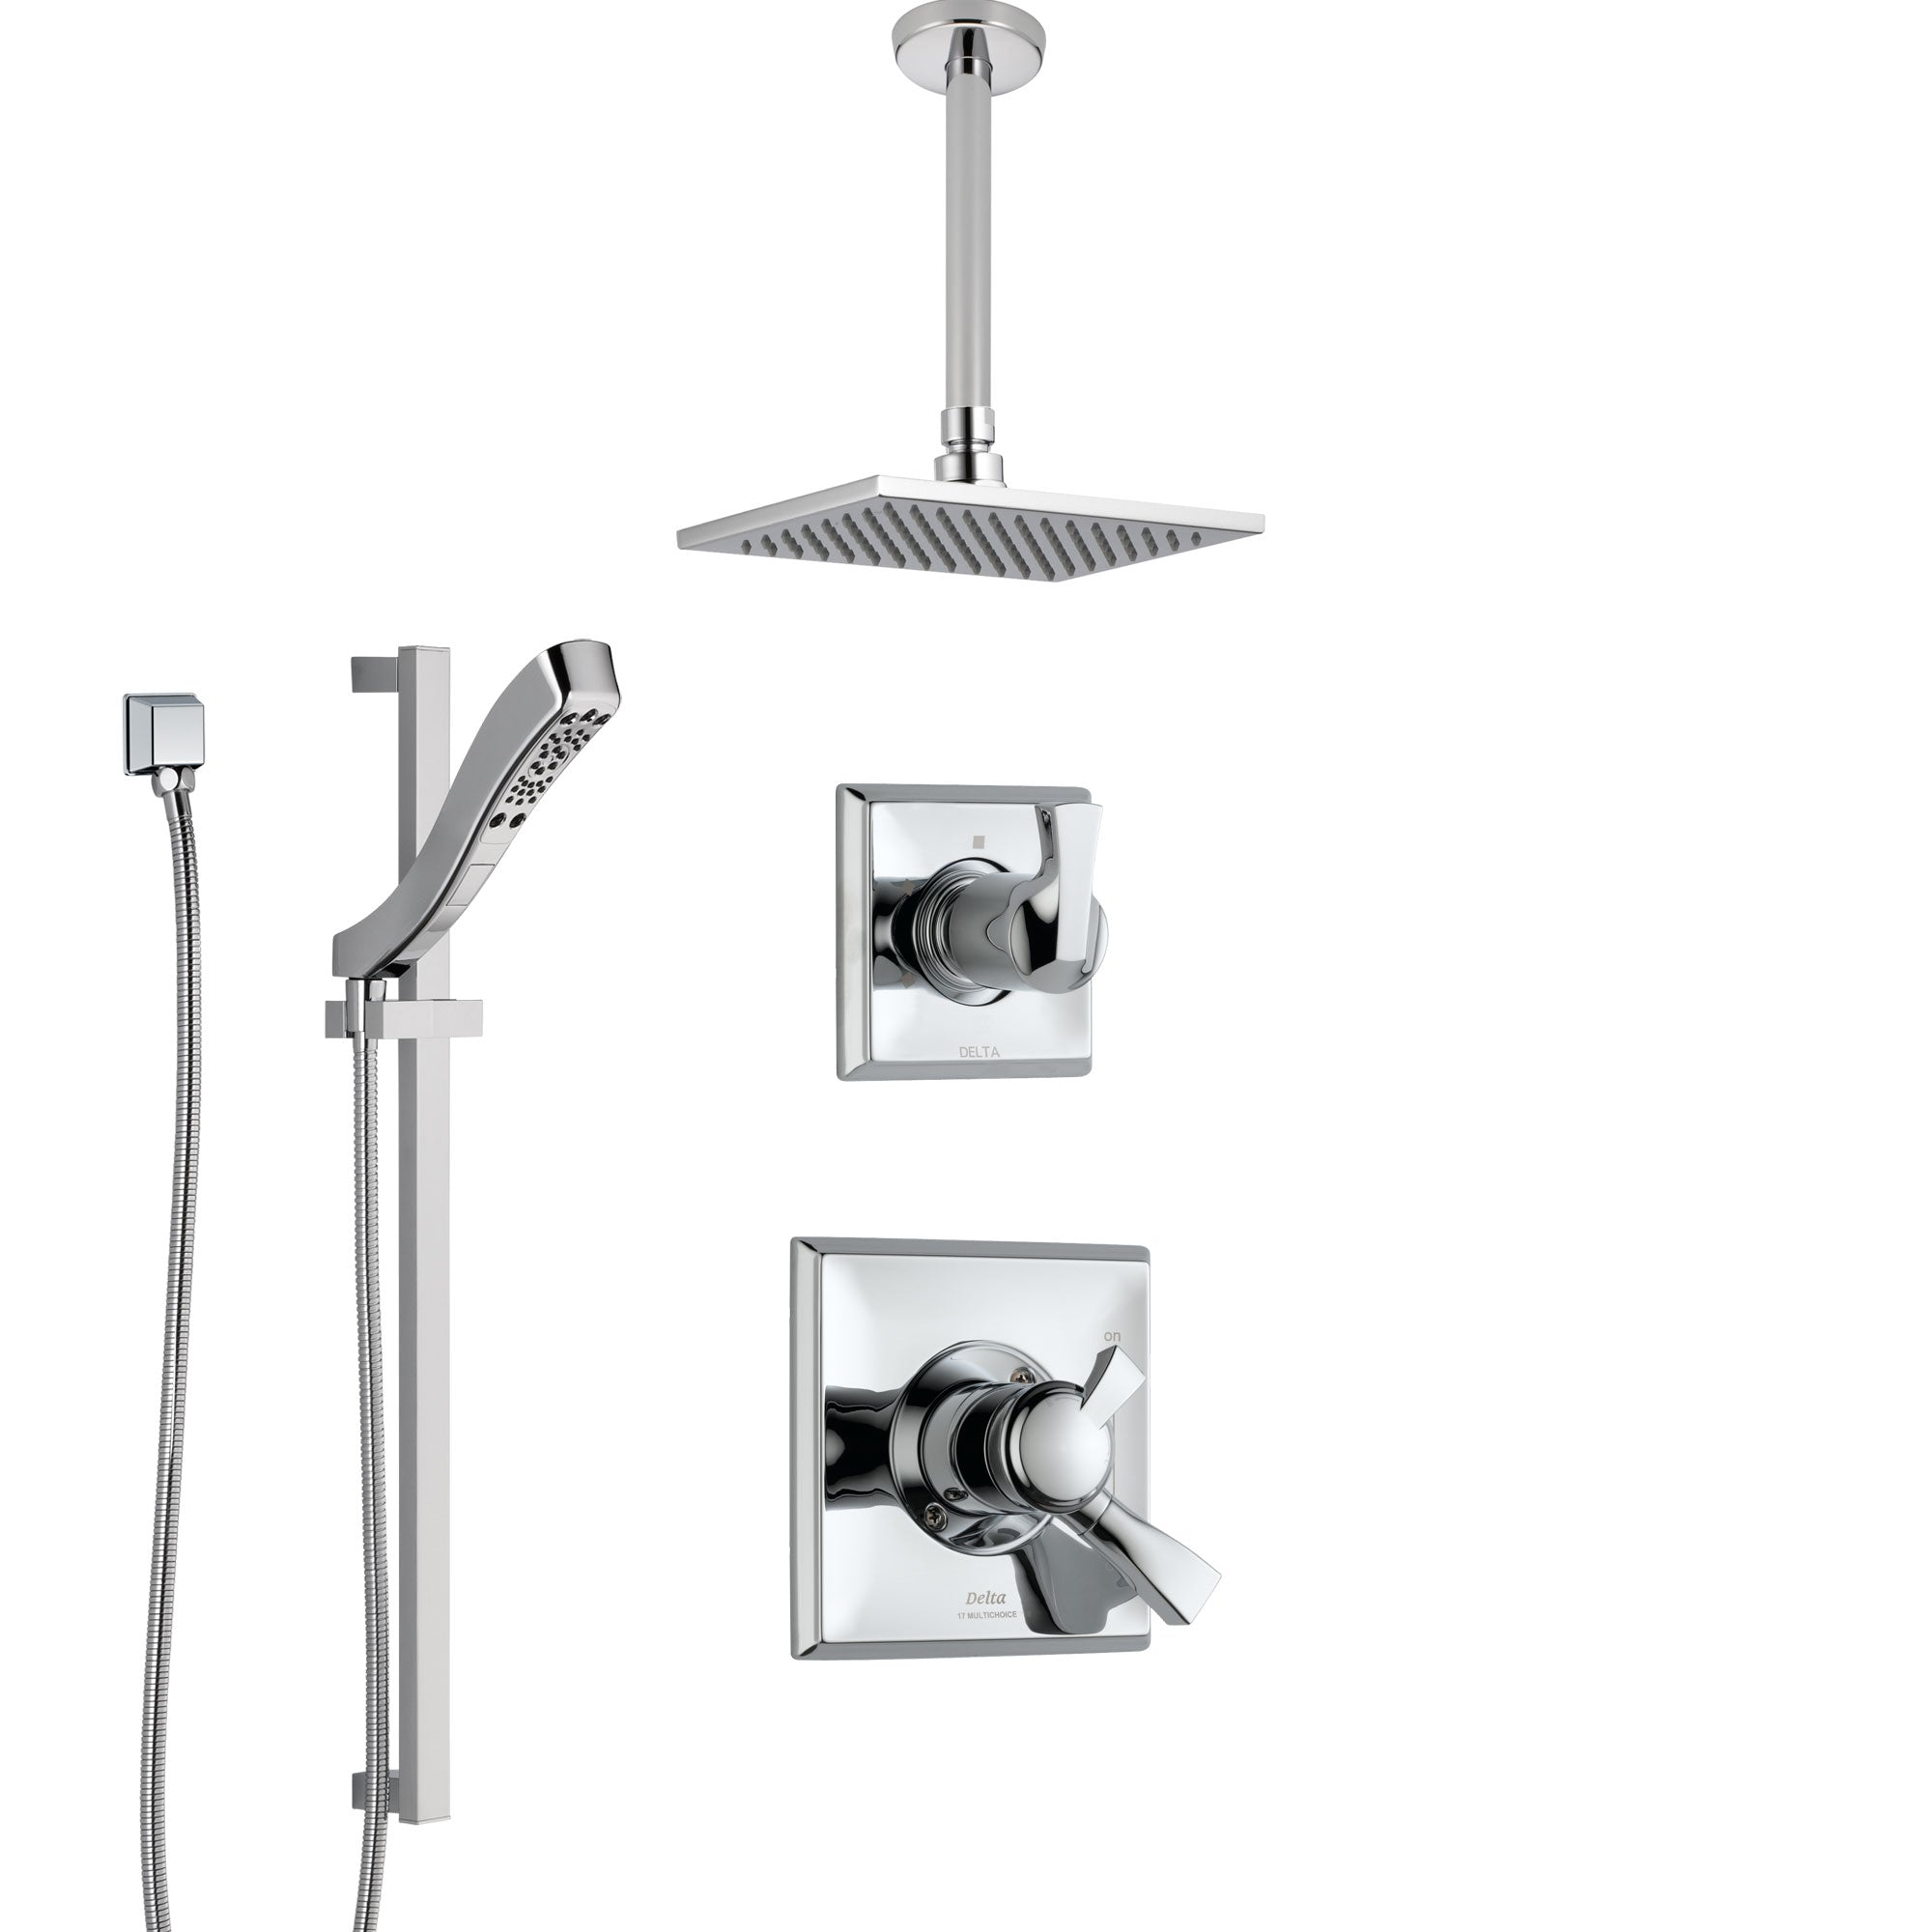 Delta Dryden Chrome Finish Shower System with Dual Control Handle, 3-Setting Diverter, Ceiling Mount Showerhead, and Hand Shower with Slidebar SS17515